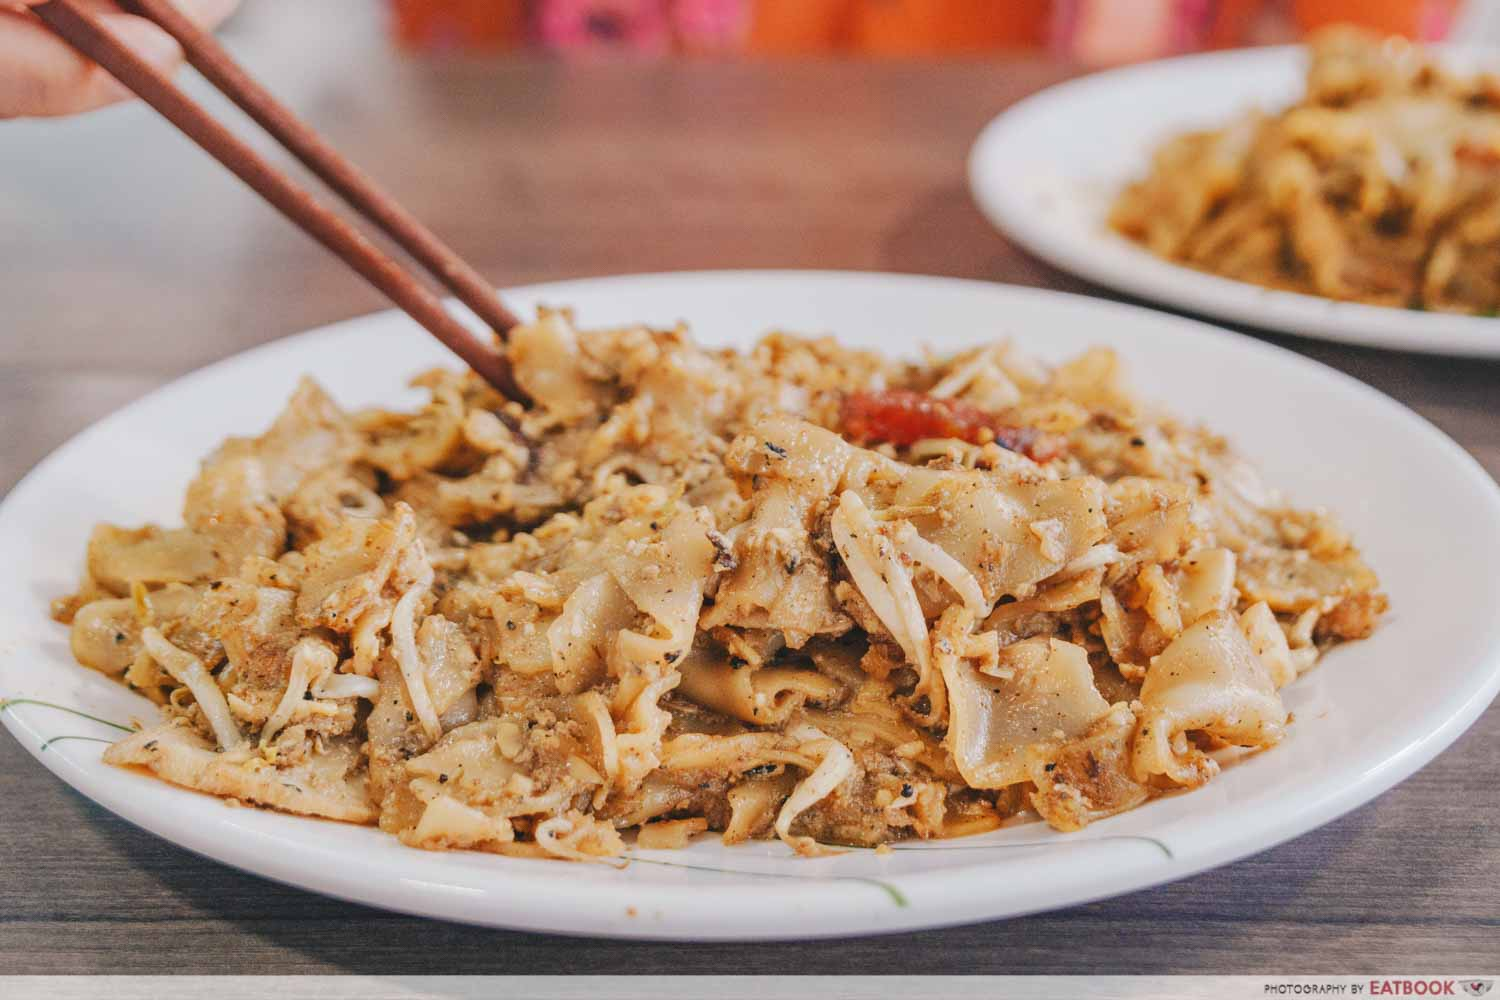 Apollo Fresh Cockle Fried Kway Teow - Char Kway Teow